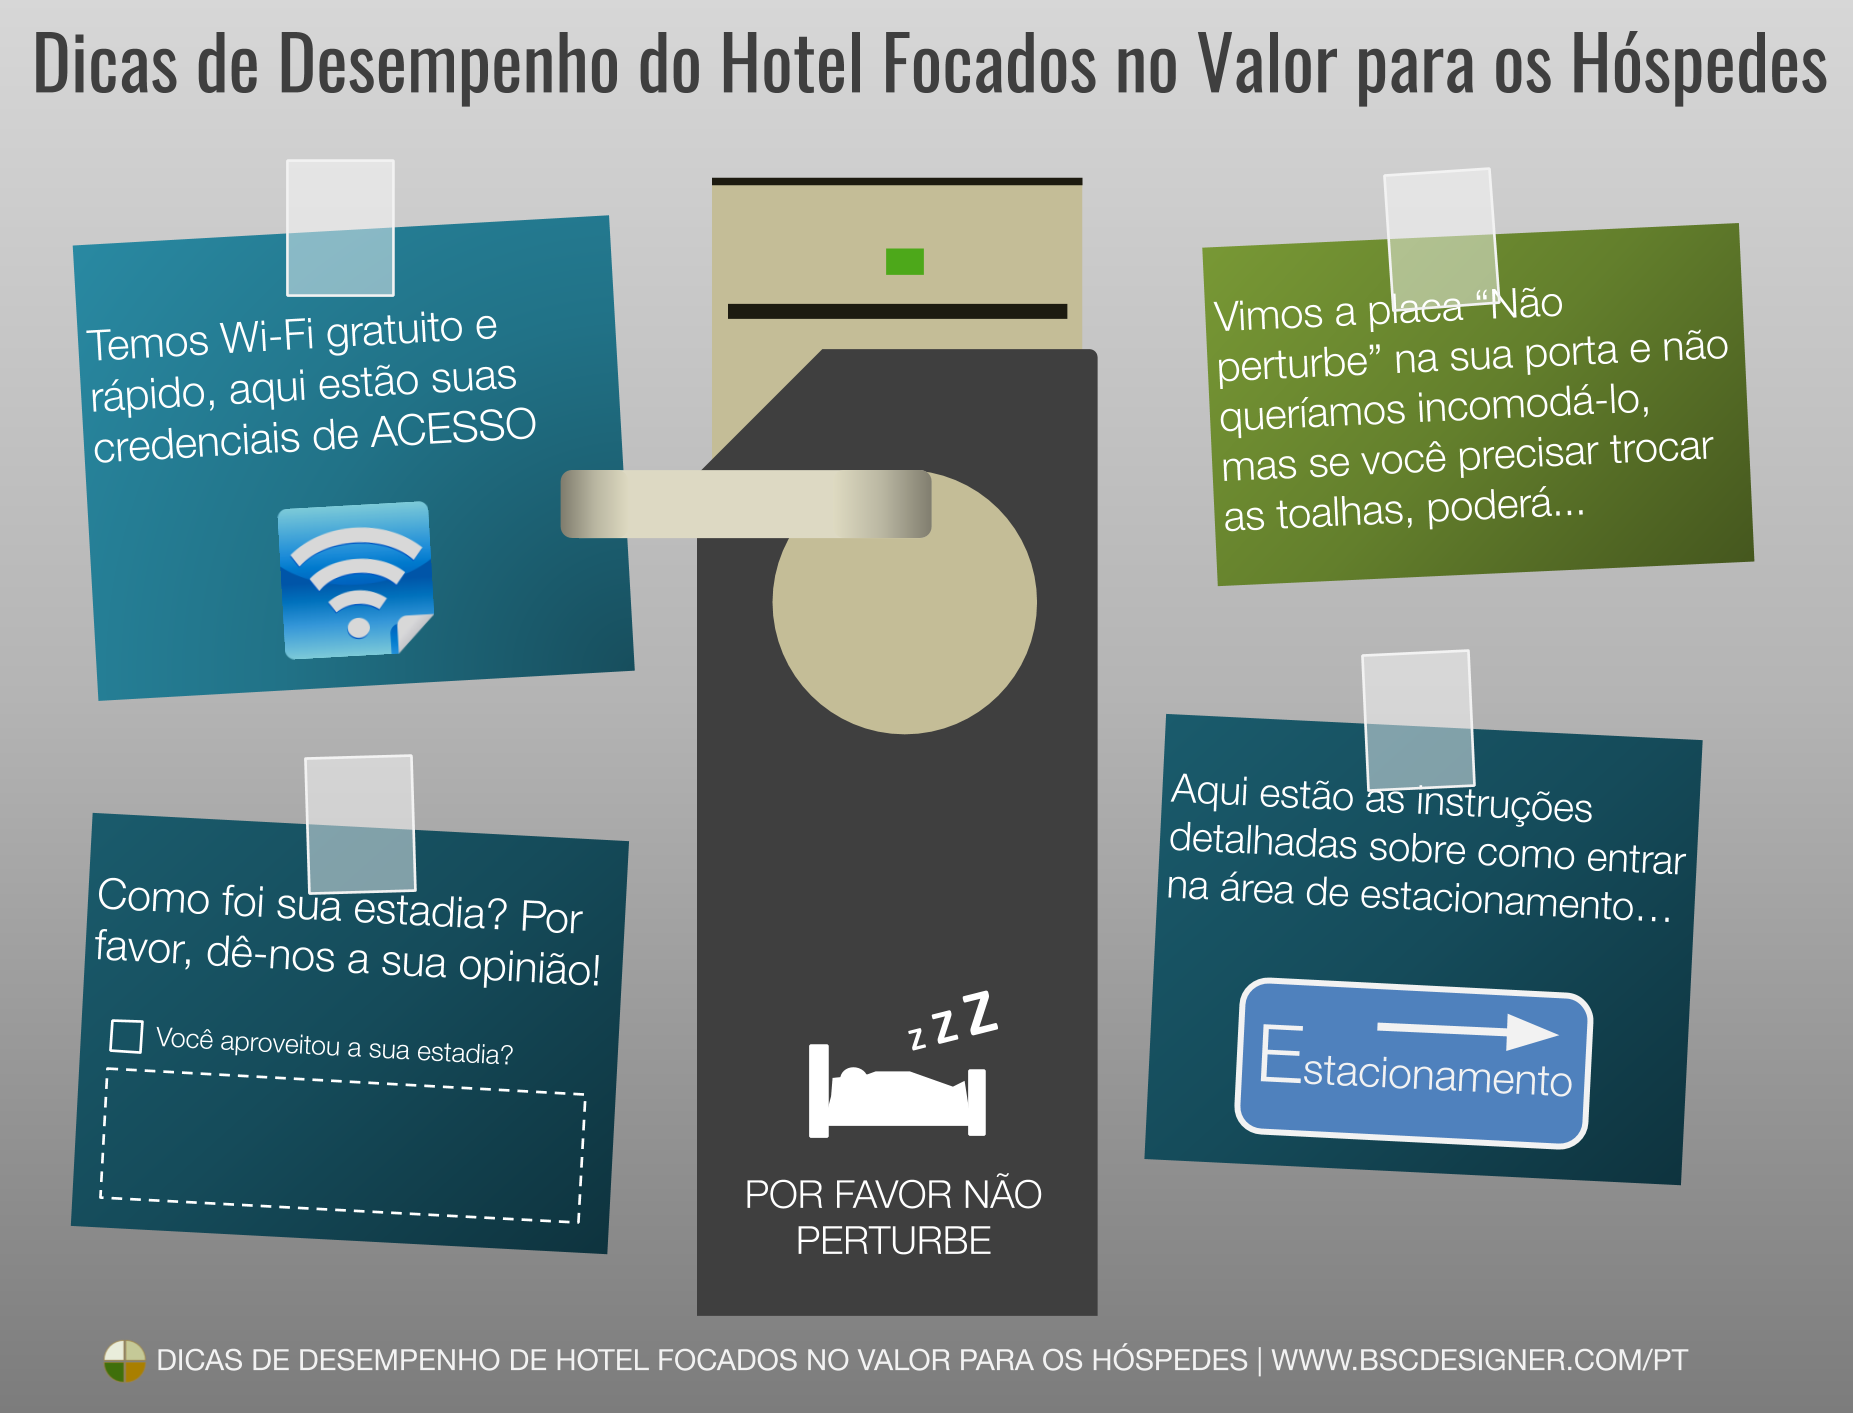 Implement Hotel Performance Hacks to Focus Strategy on the Value for the Guests